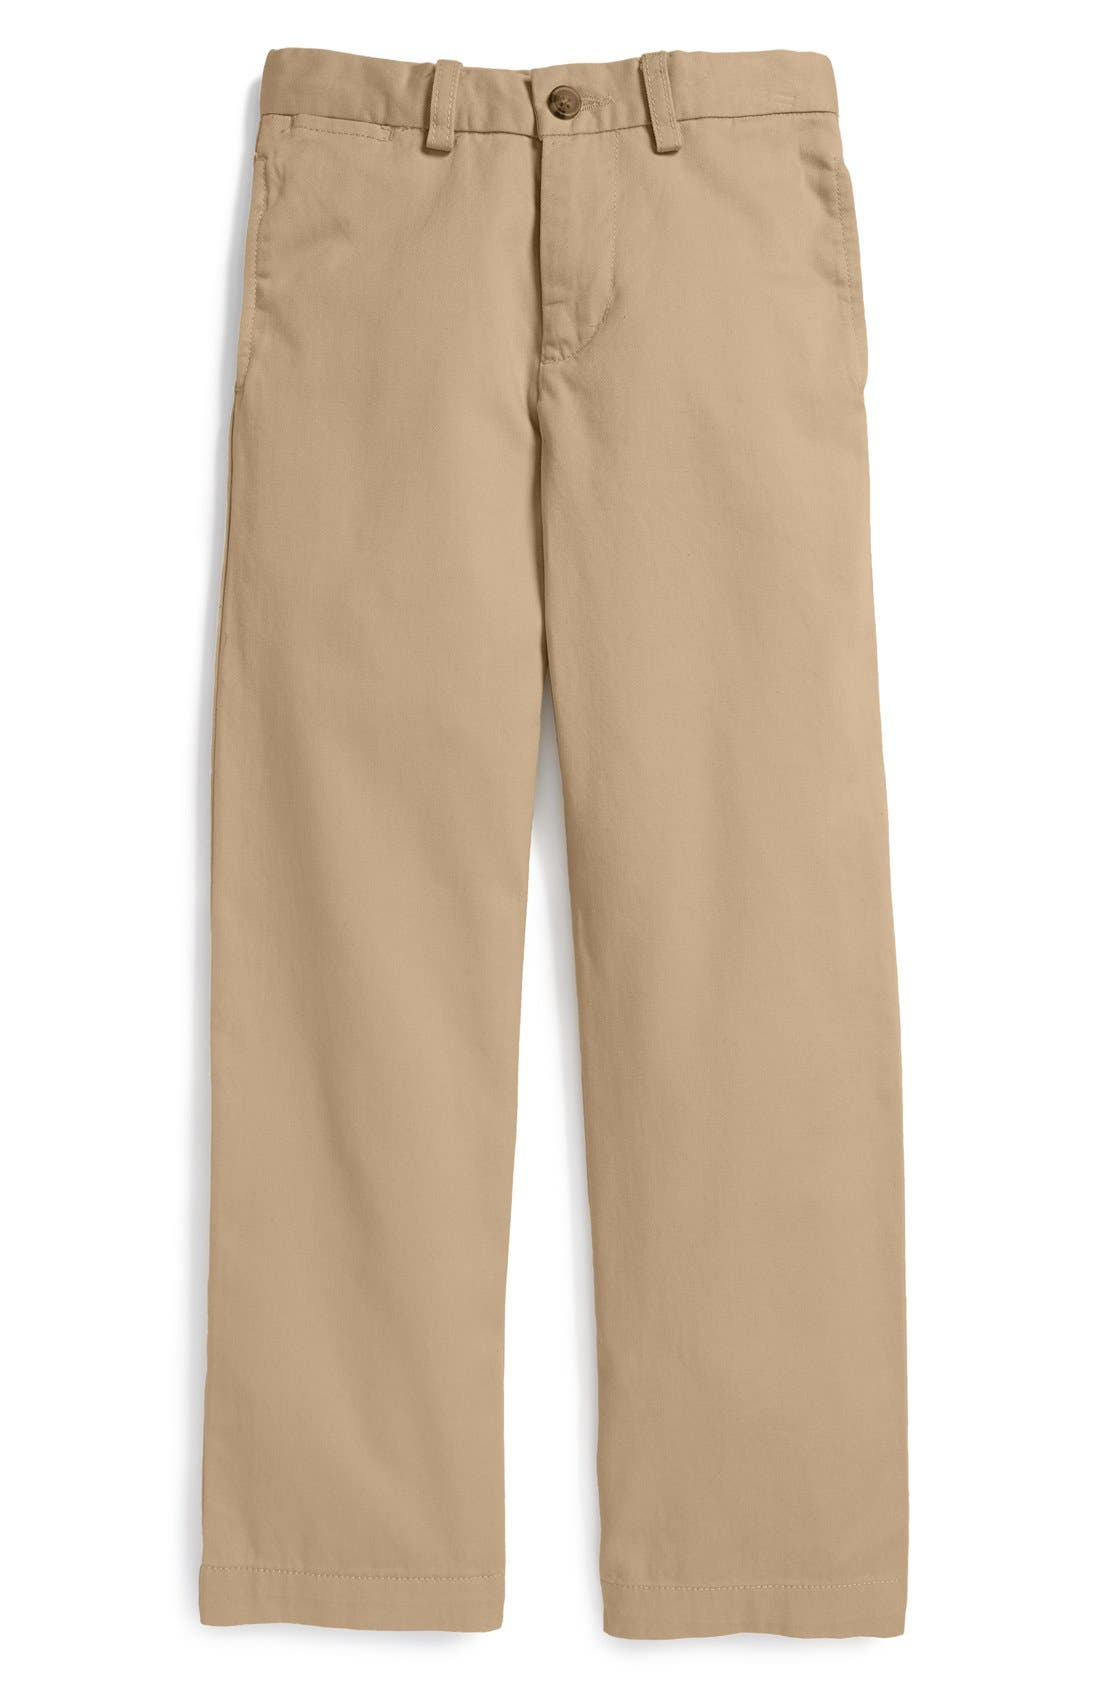 Alternate Image 1 Selected - Ralph Lauren 'Suffield' Flat Front Cotton Chinos (Big Boys)